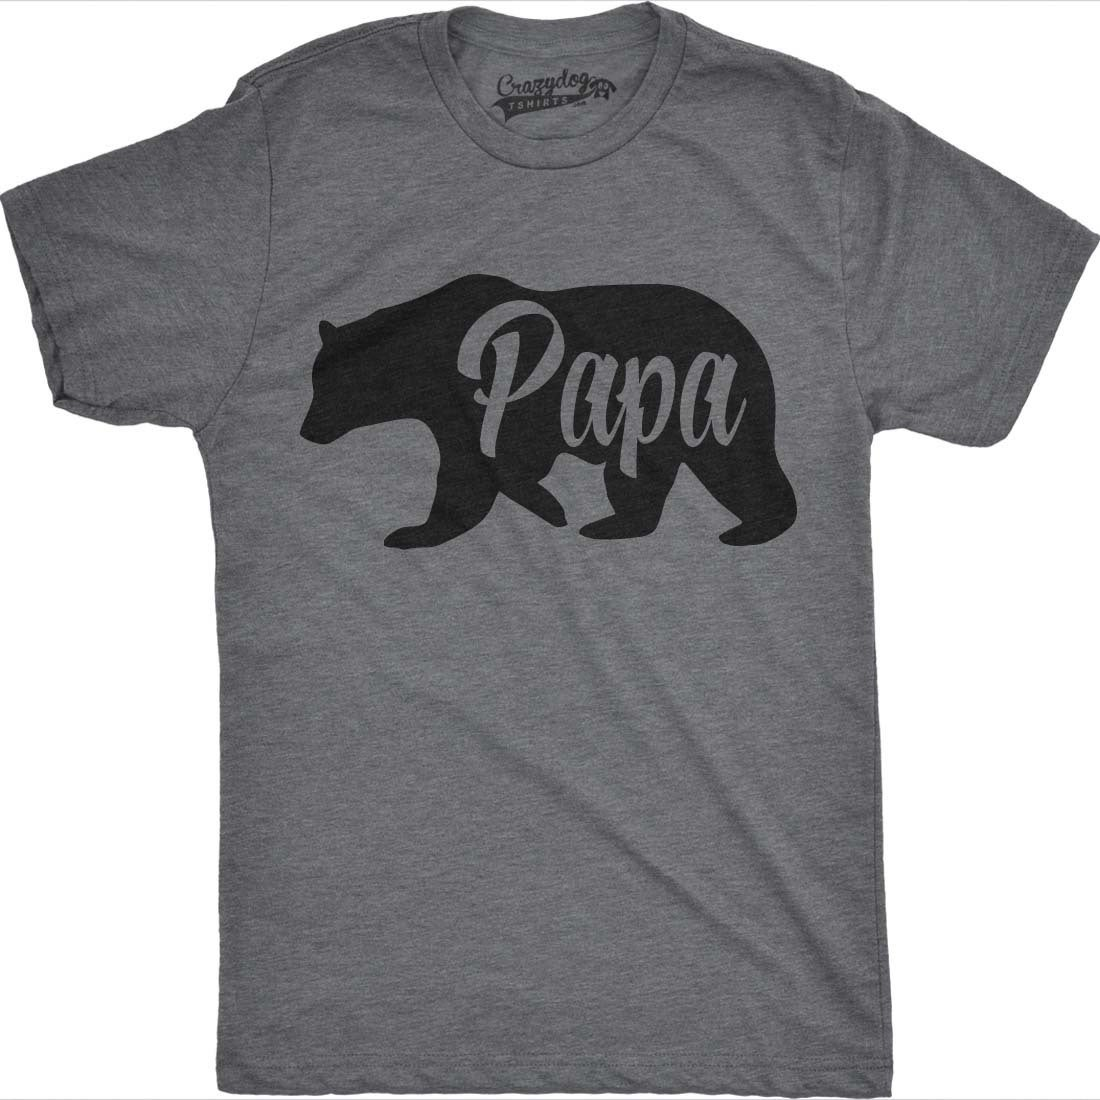 076d0c8eca Shop Mens Bear Papa Funny Shirts for Dads Gift Idea Novelty Tees Family T  shirt - On Sale - Free Shipping On Orders Over $45 - Overstock - 18534642